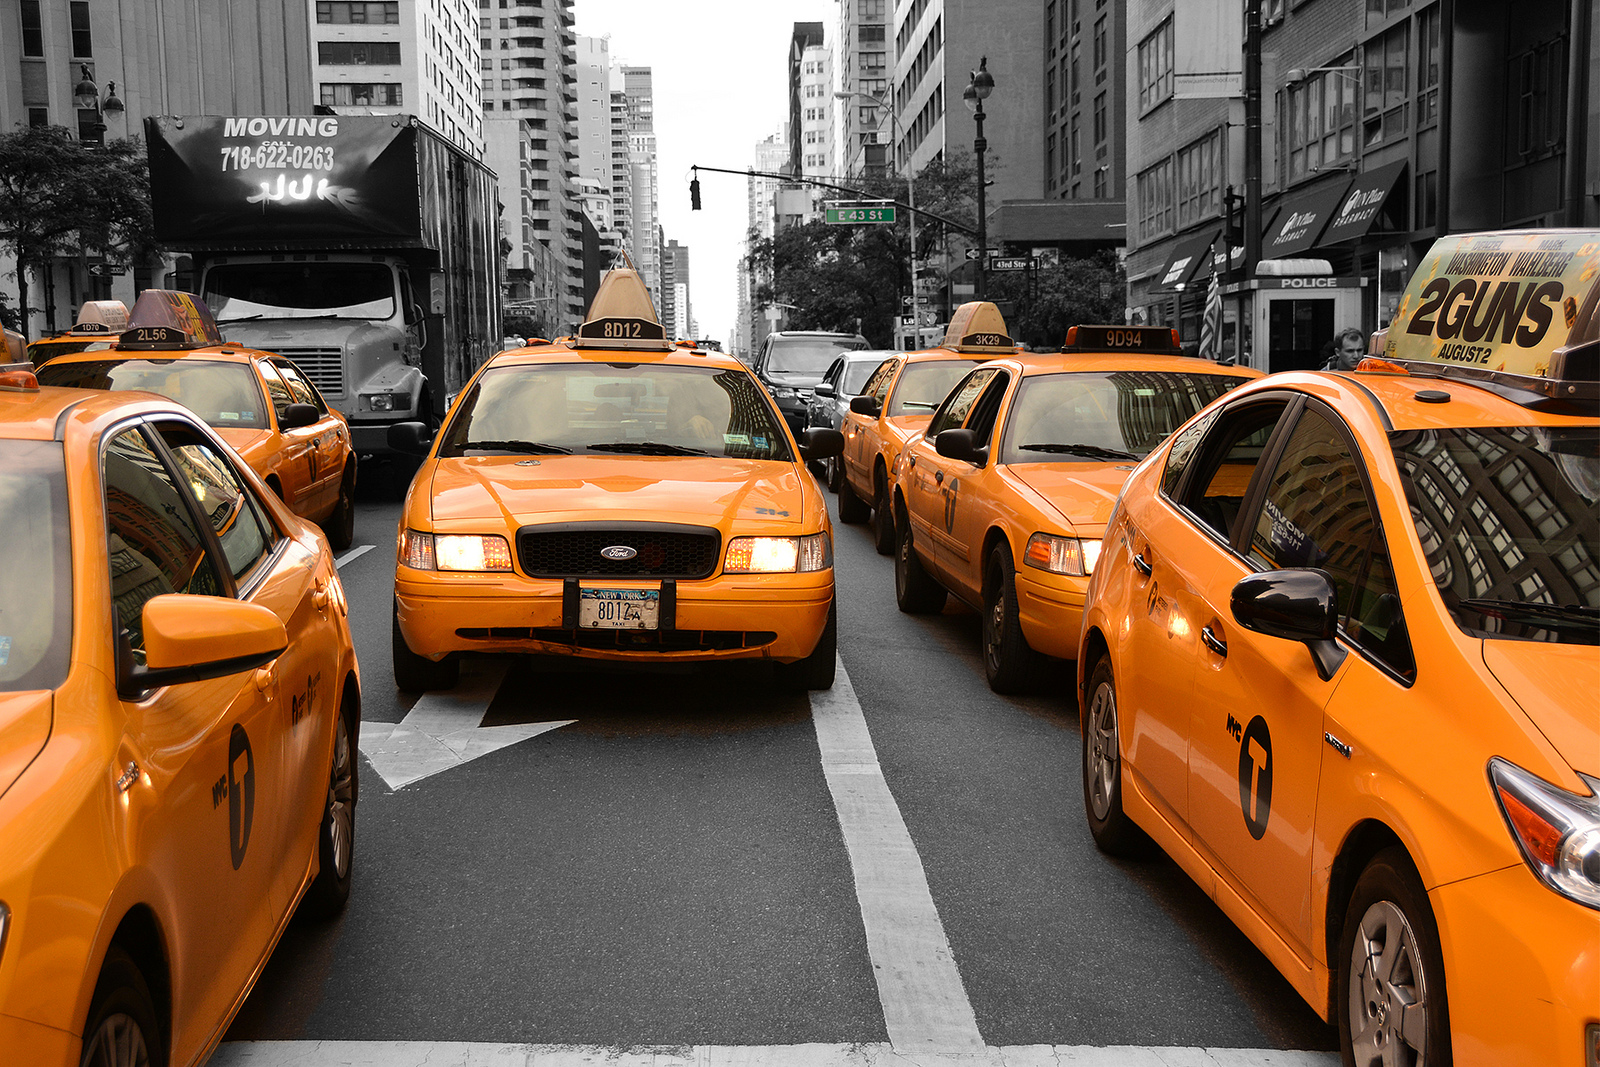 NYC extends cap on Uber, Lyft for another year | 6sqft